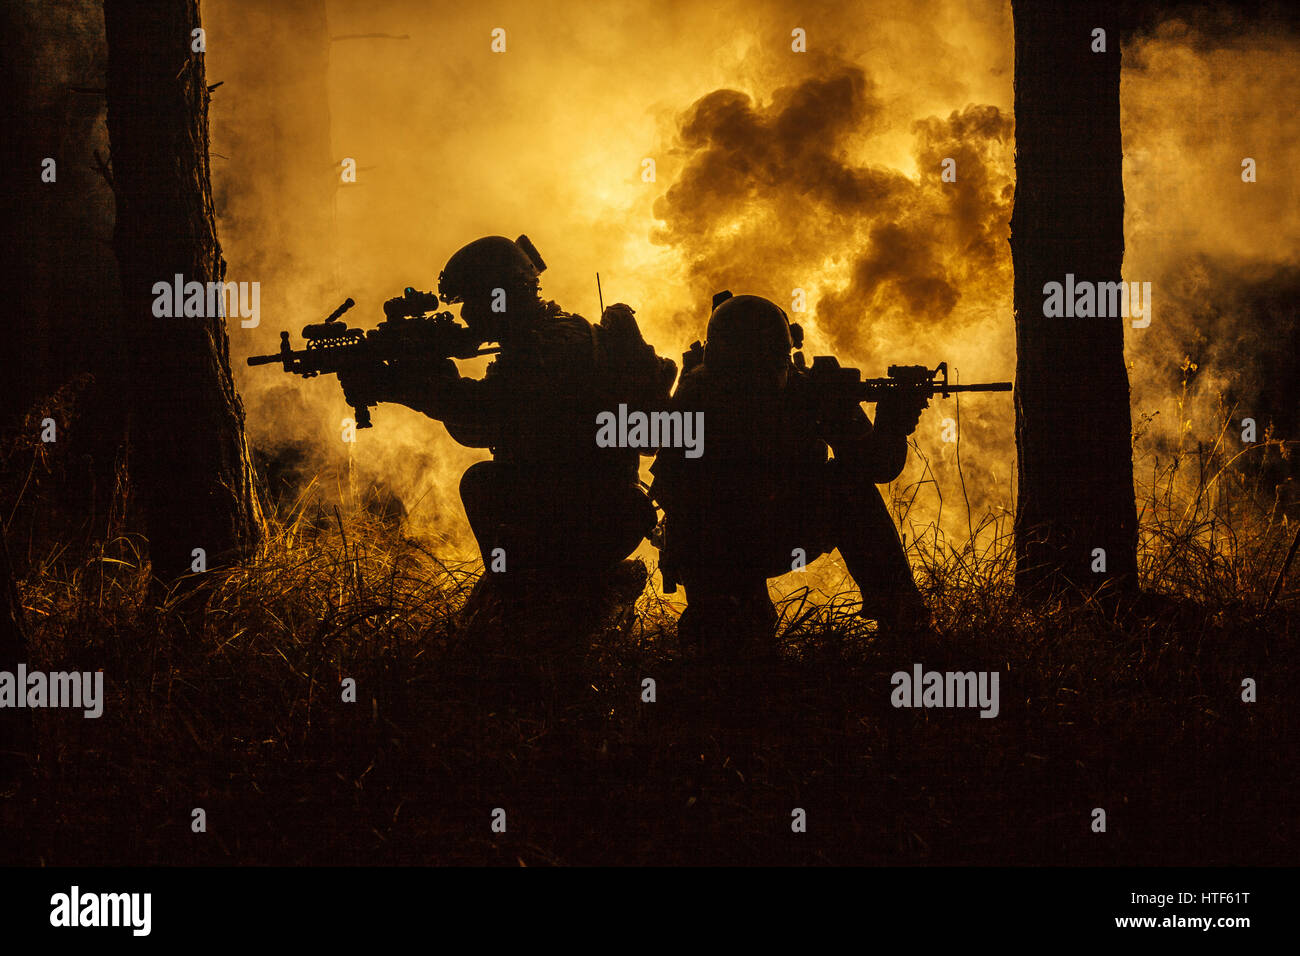 Backlit silhouette of special forces marine operators in forest on fire explosion background. Battle, bombs exploding, - Stock Image